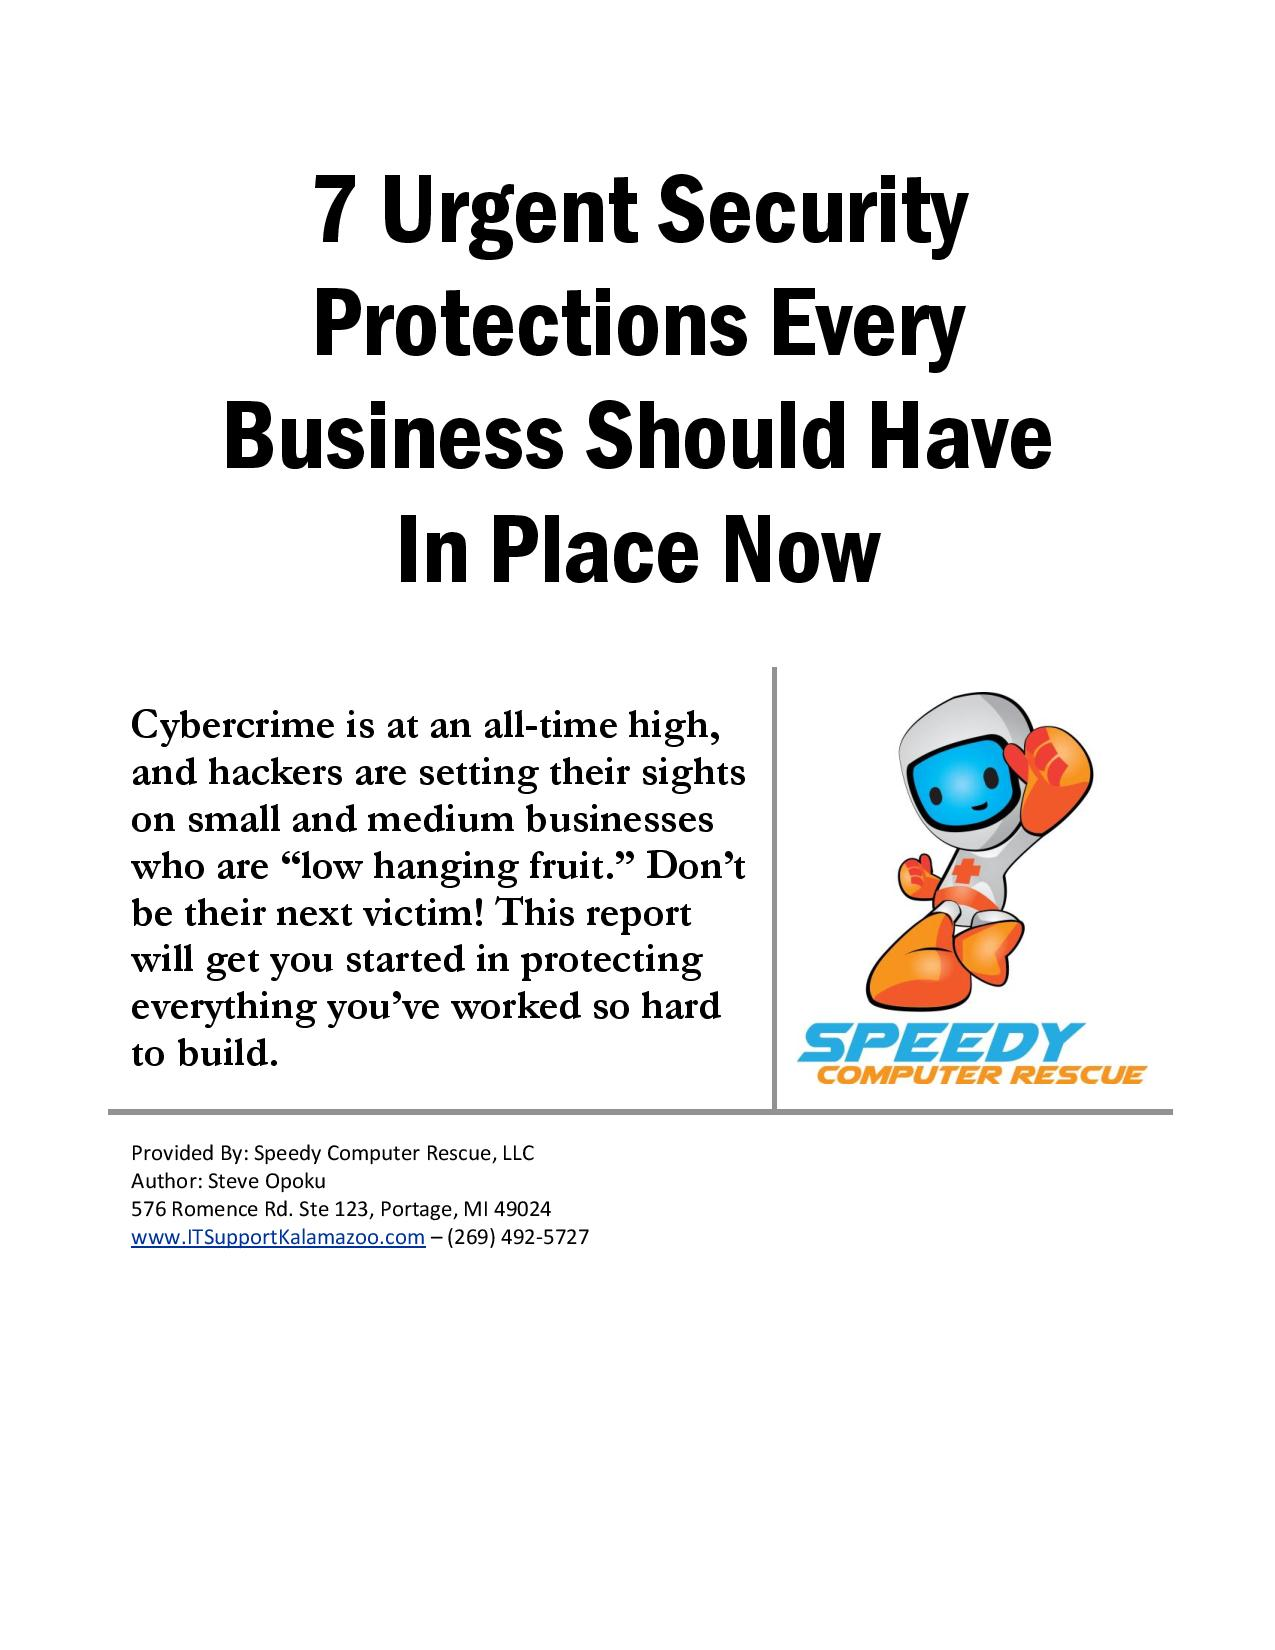 7 URGENT SECURITY-page-001